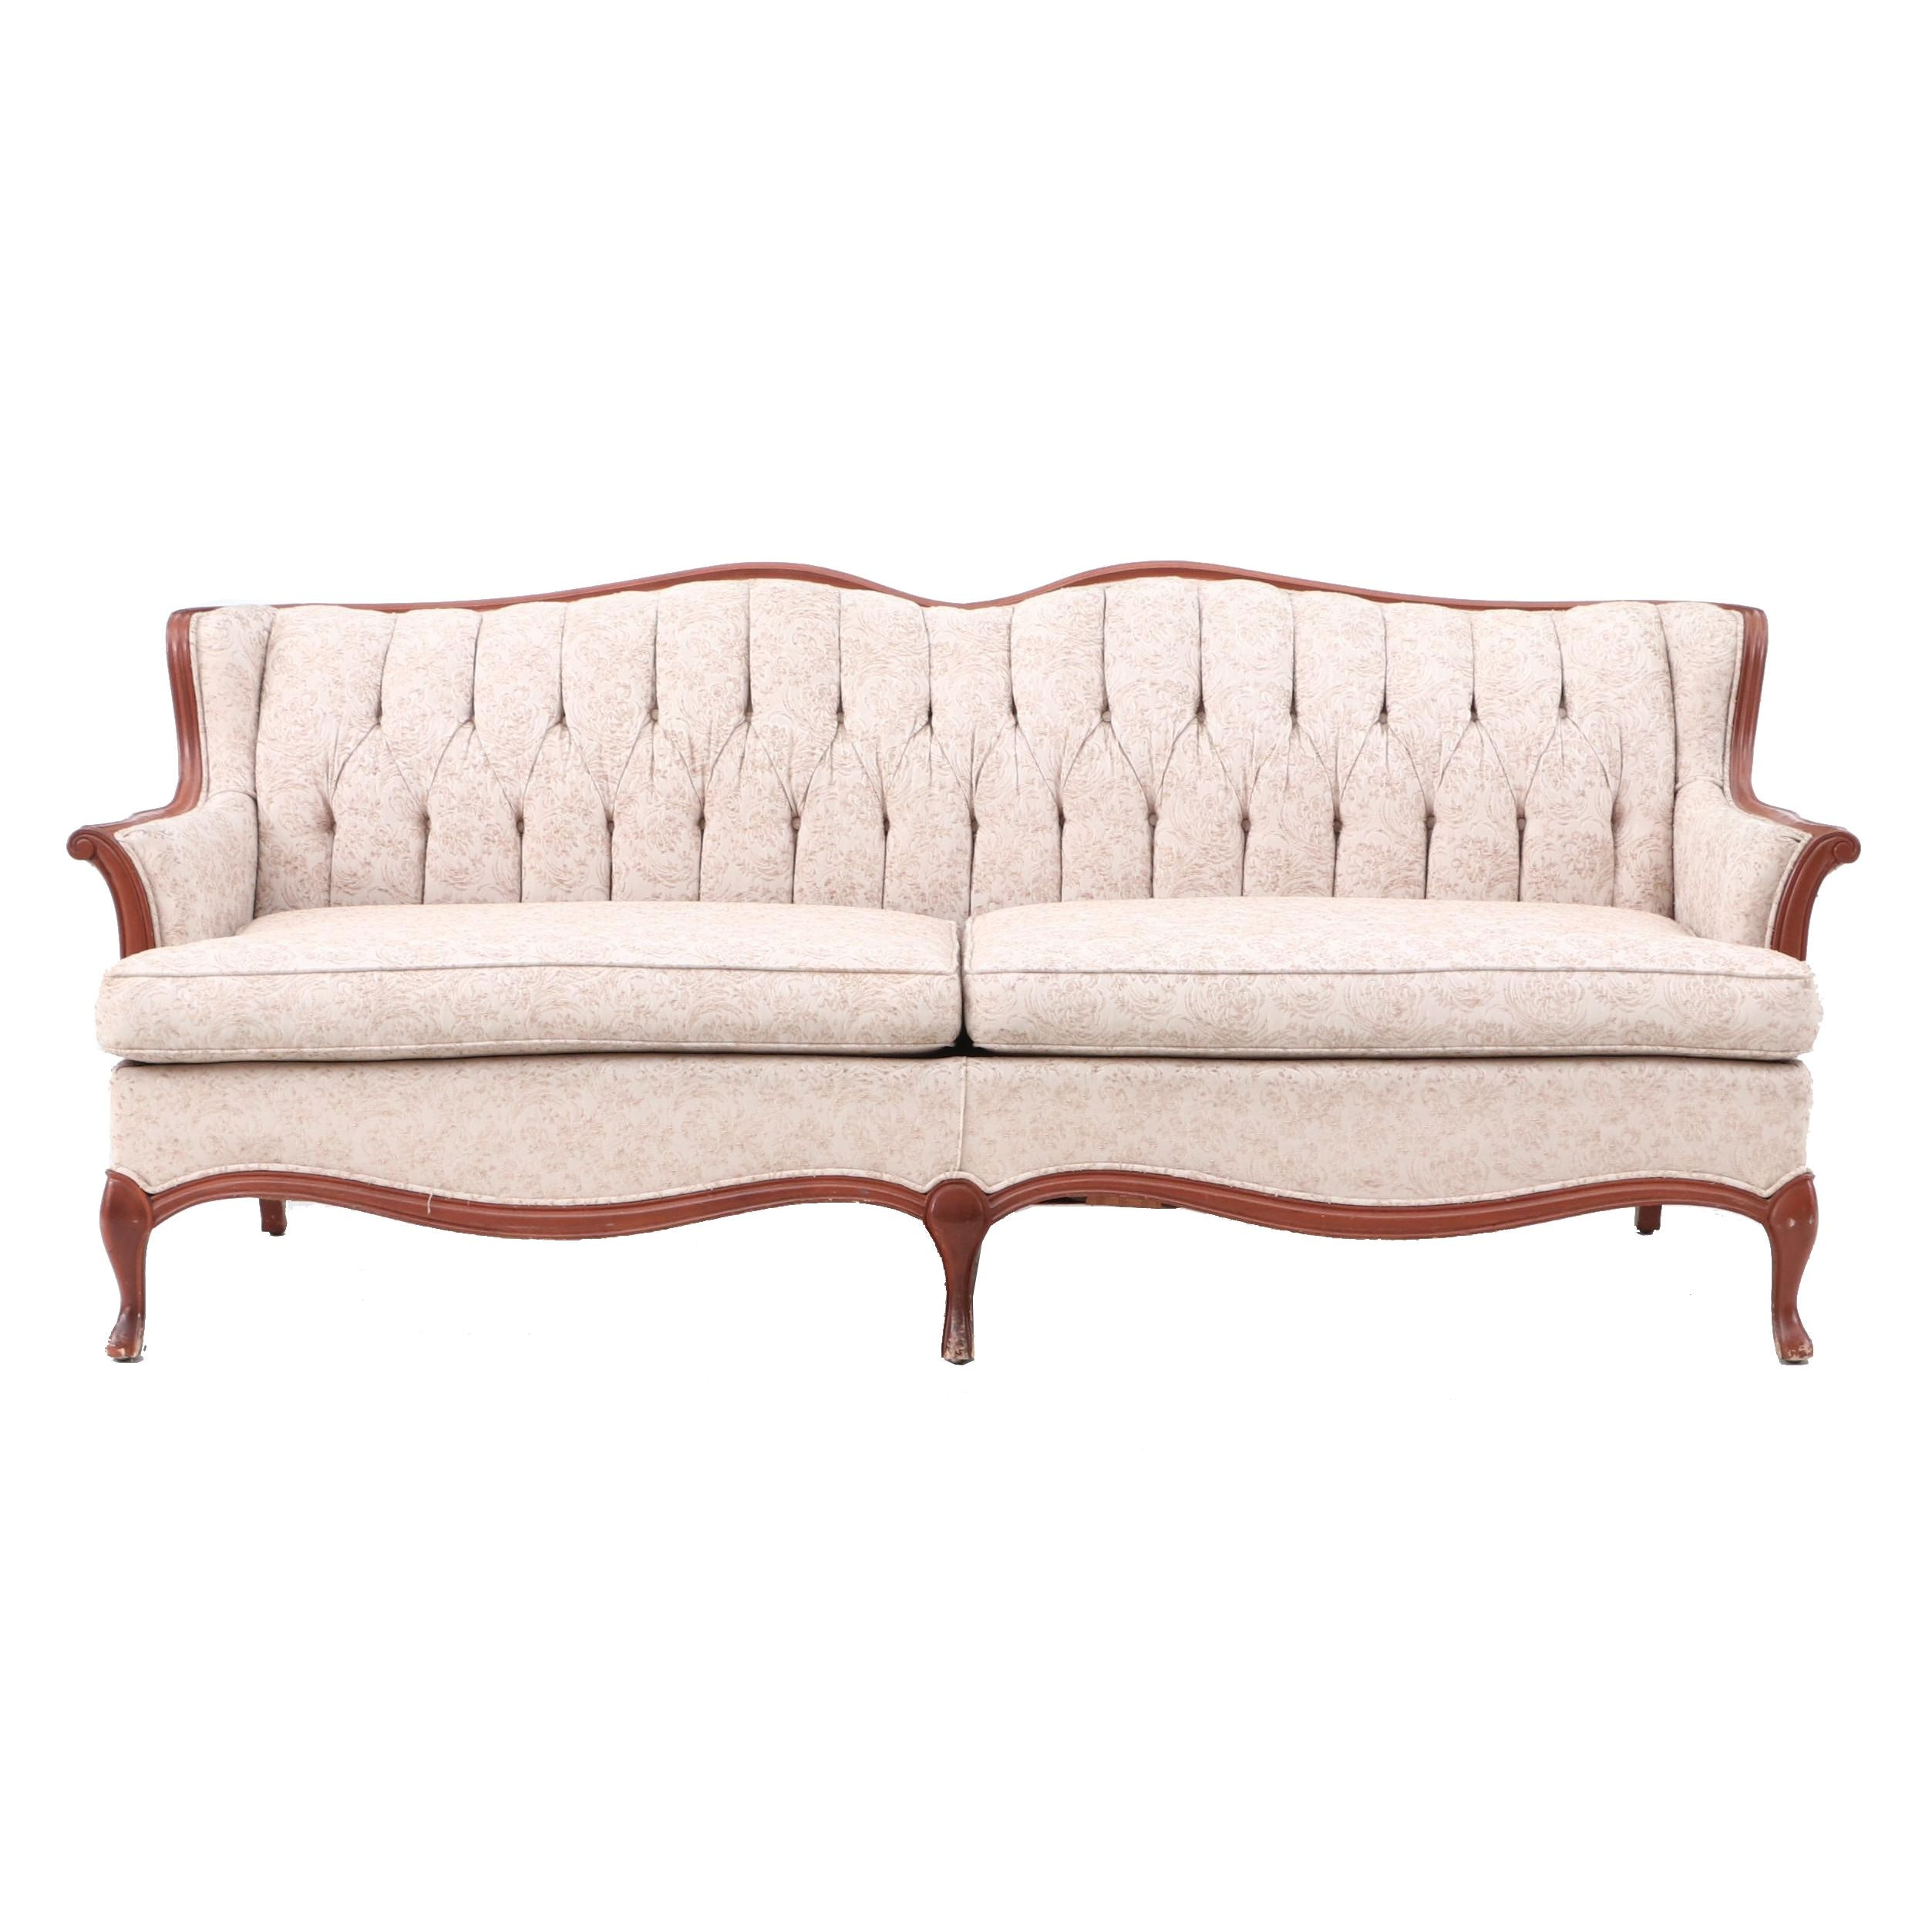 Victorian-Style Tufted Back Sofa